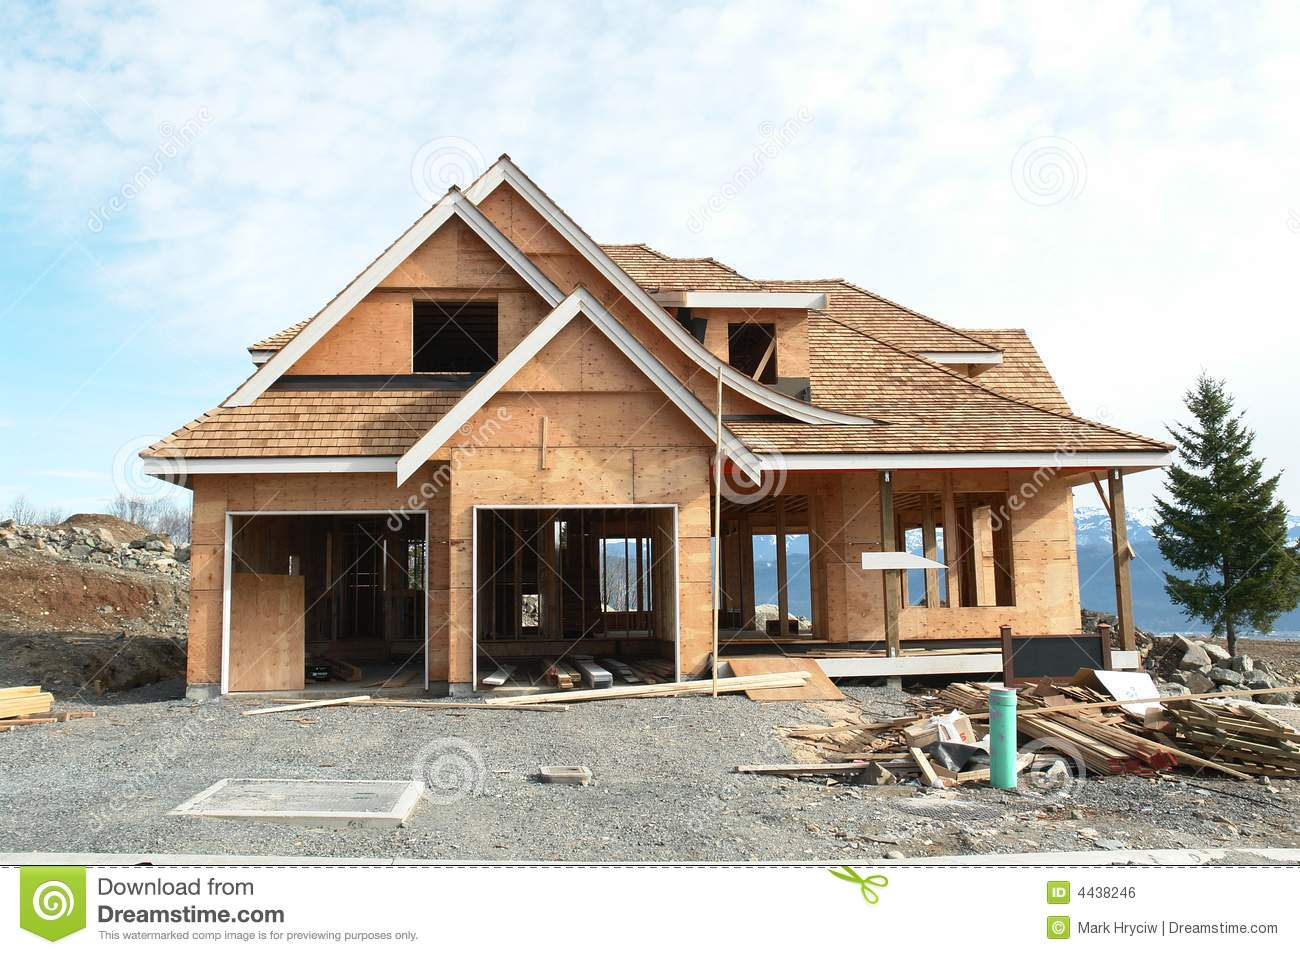 New house home construction royalty free stock image for New home images free